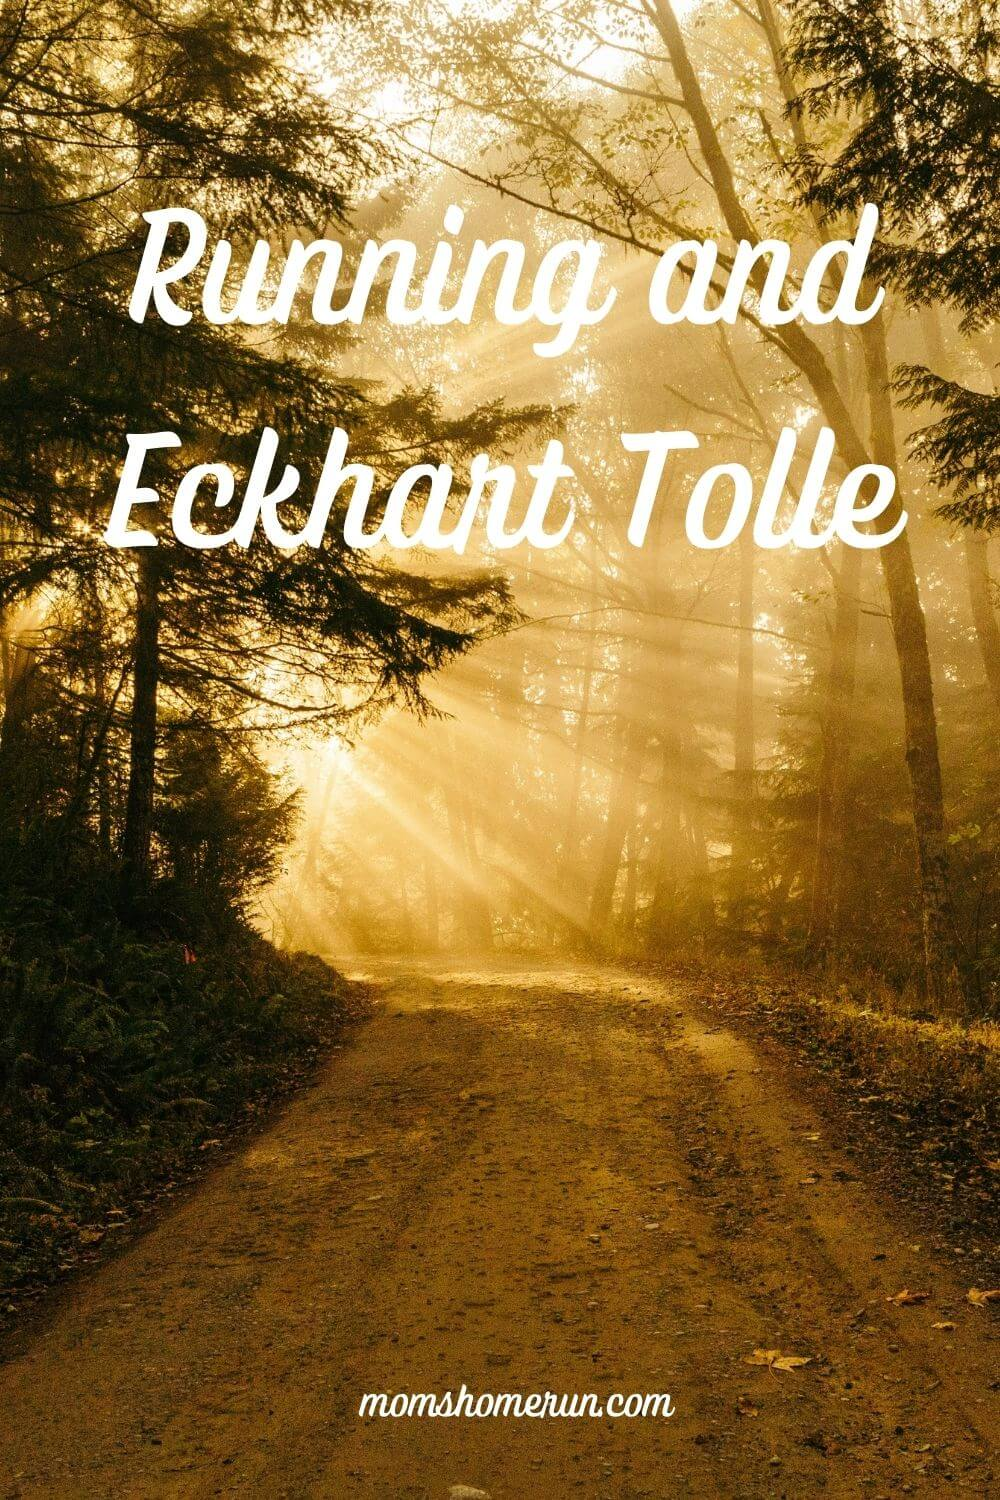 Running and Eckhart Tolle